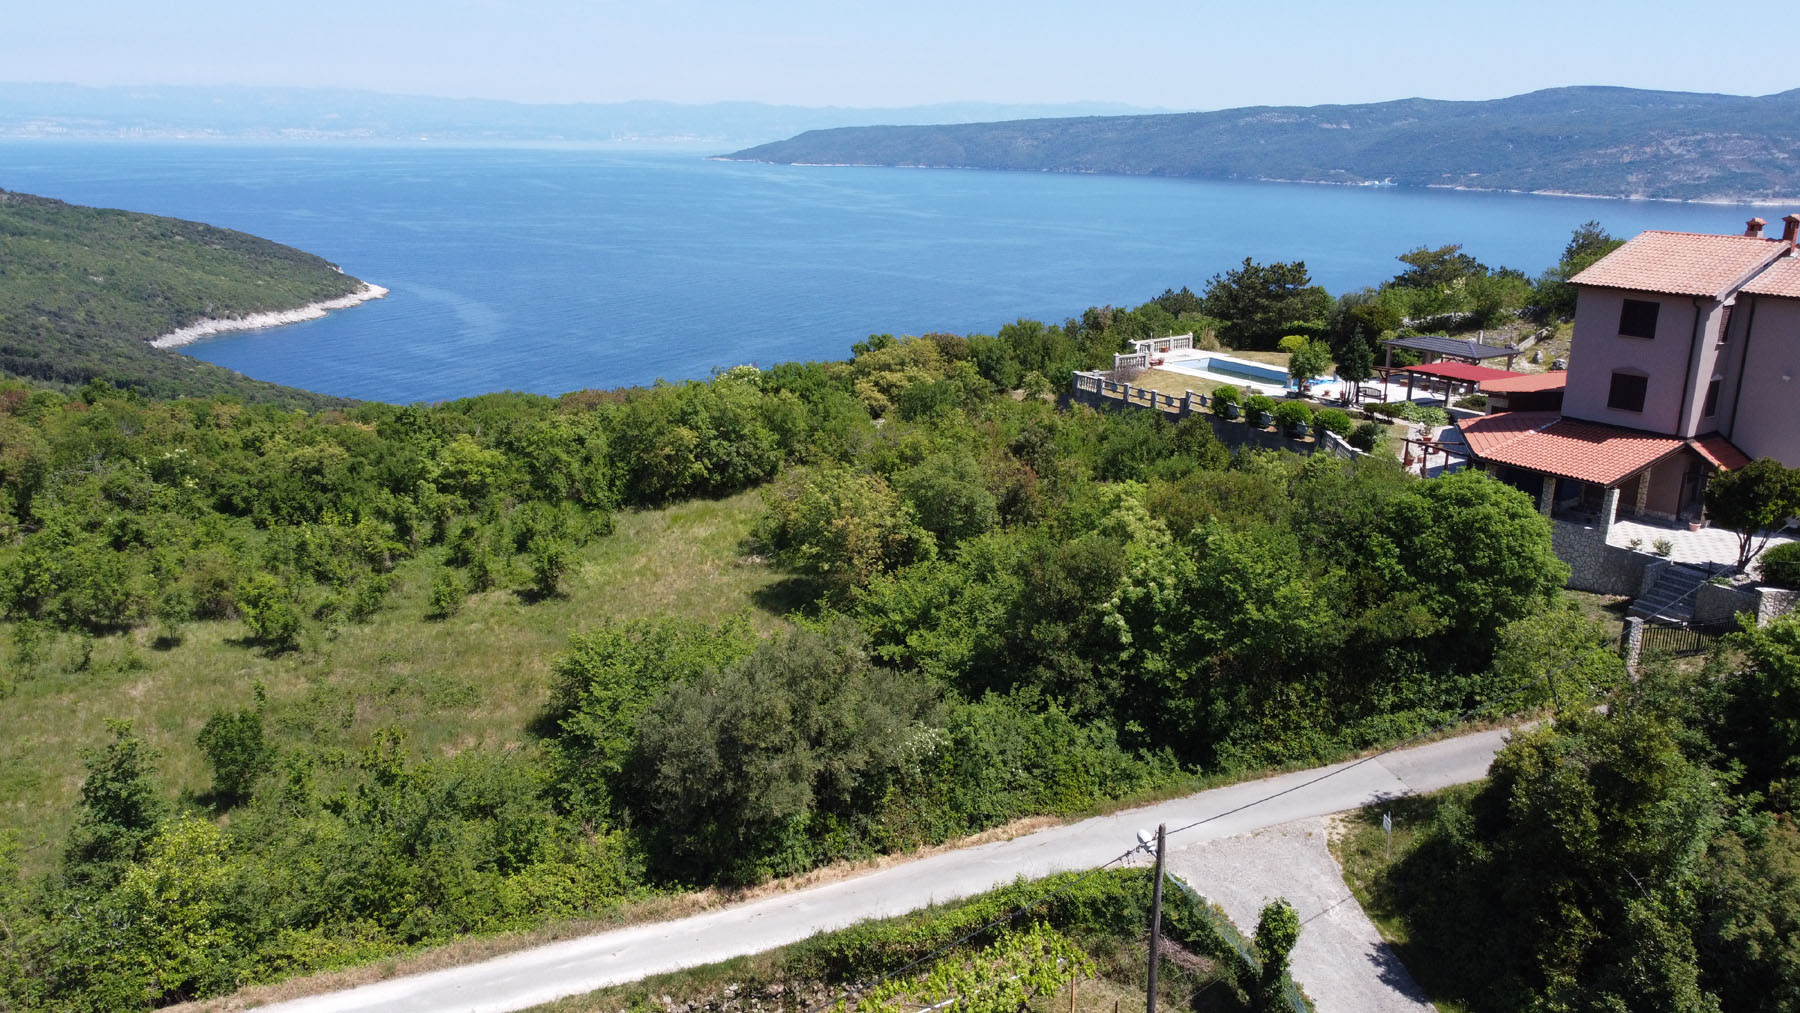 O-635 Building plot with fantastic sea views and views of the island of Cres, approx. 1 km air-linedistance from the sea.